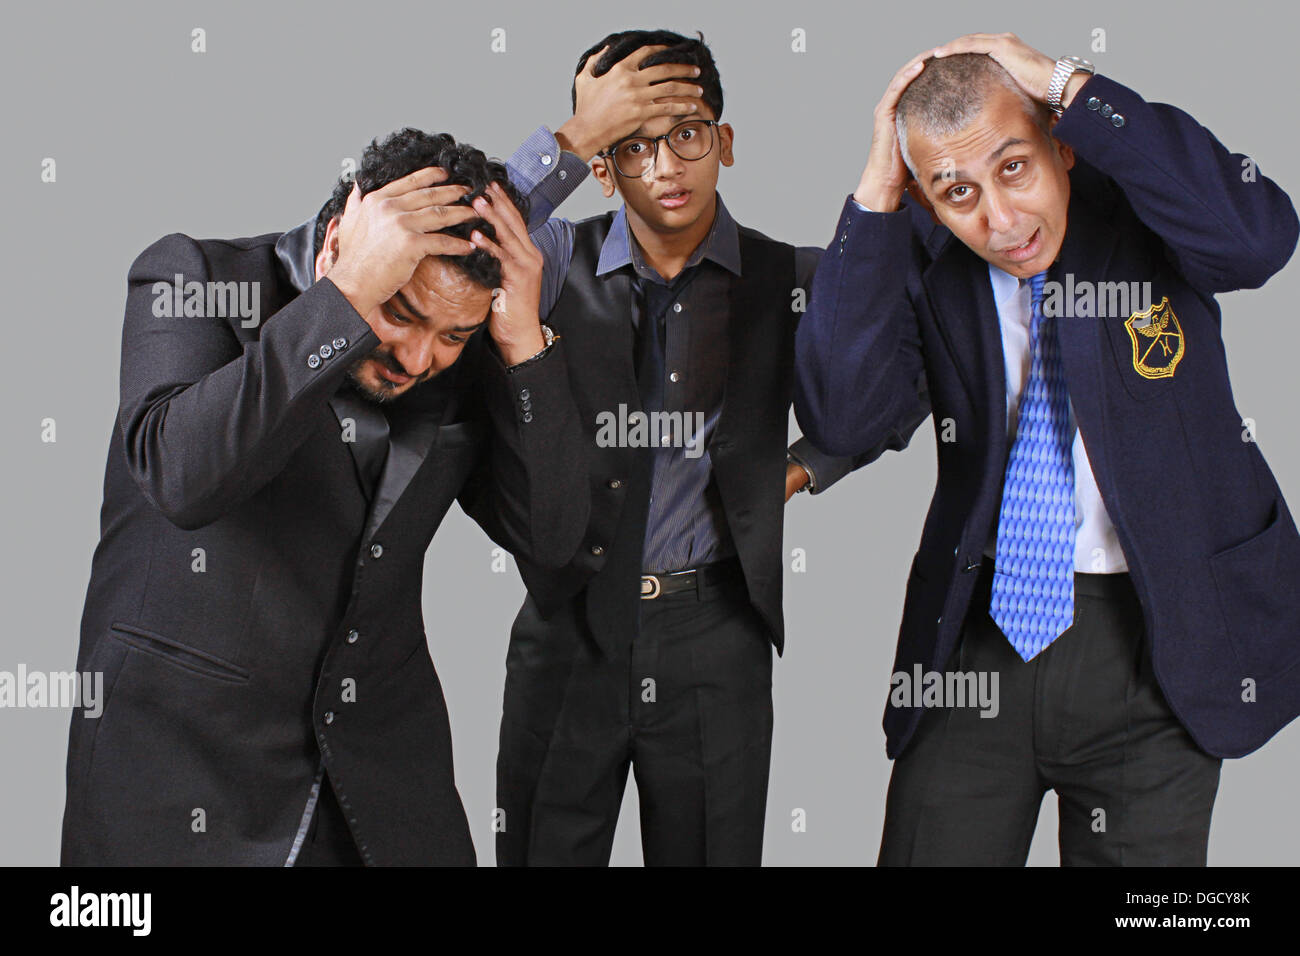 Three business men expressing sorrow over big loss in business - Stock Image